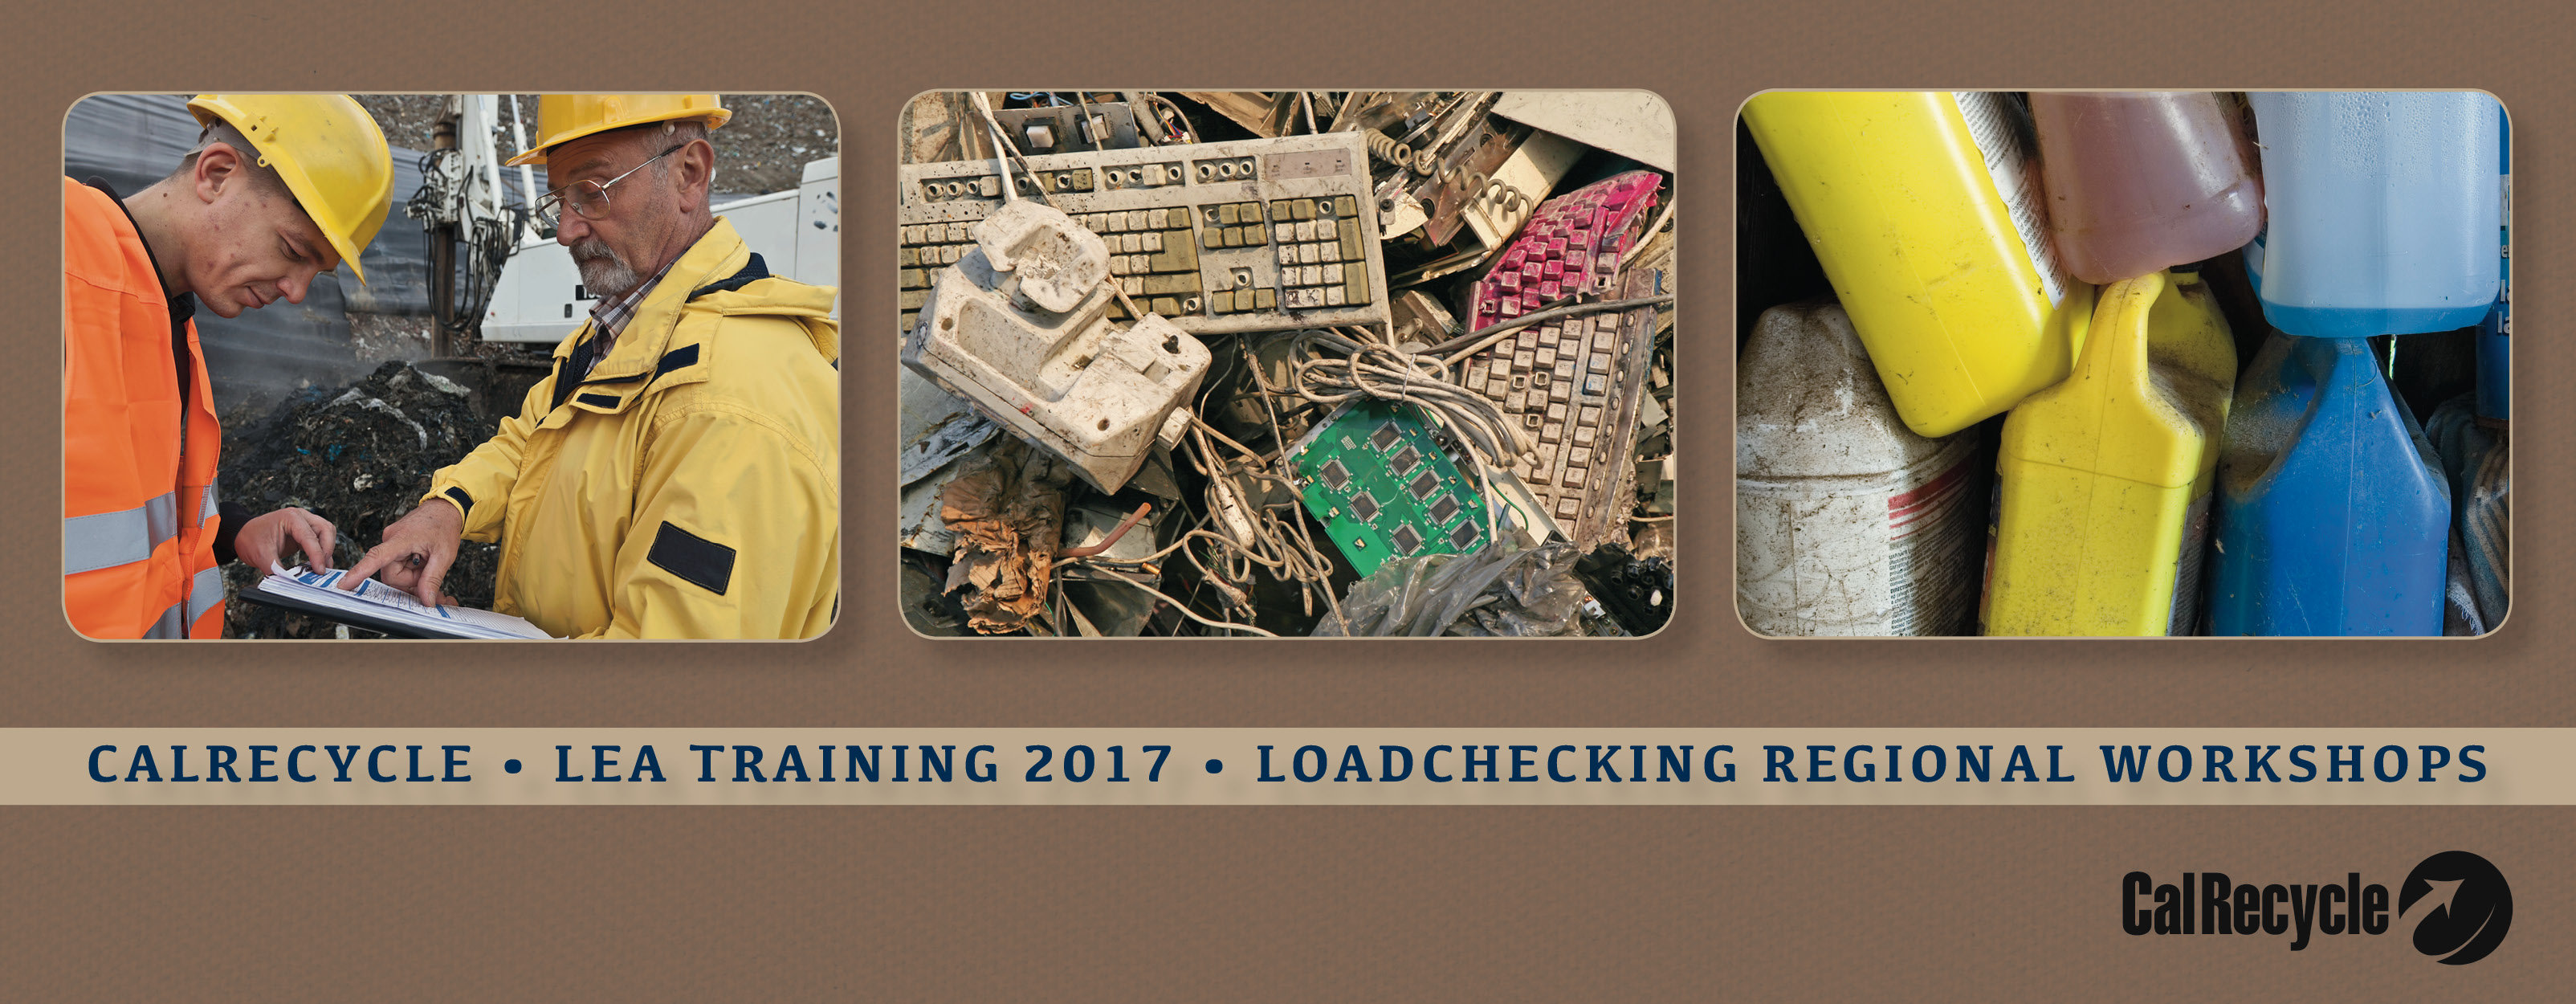 2017 CalRecycle/LEA Trainings: Loadchecking